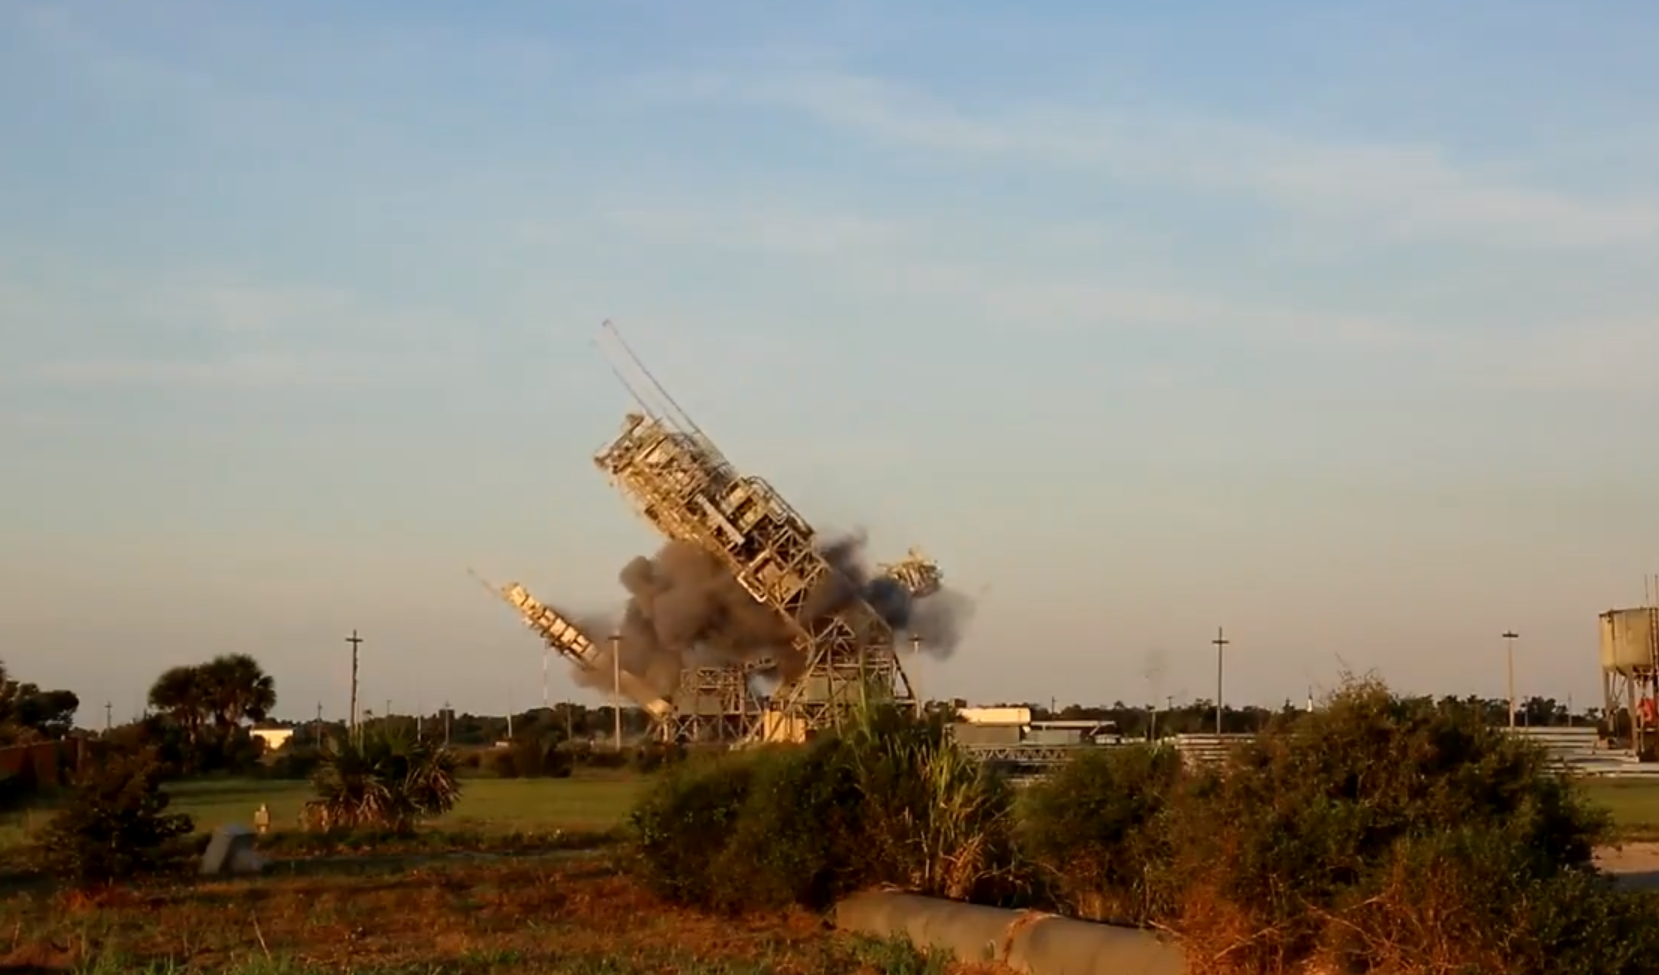 Launch towers at Cape Canaveral demolished in planned explosion